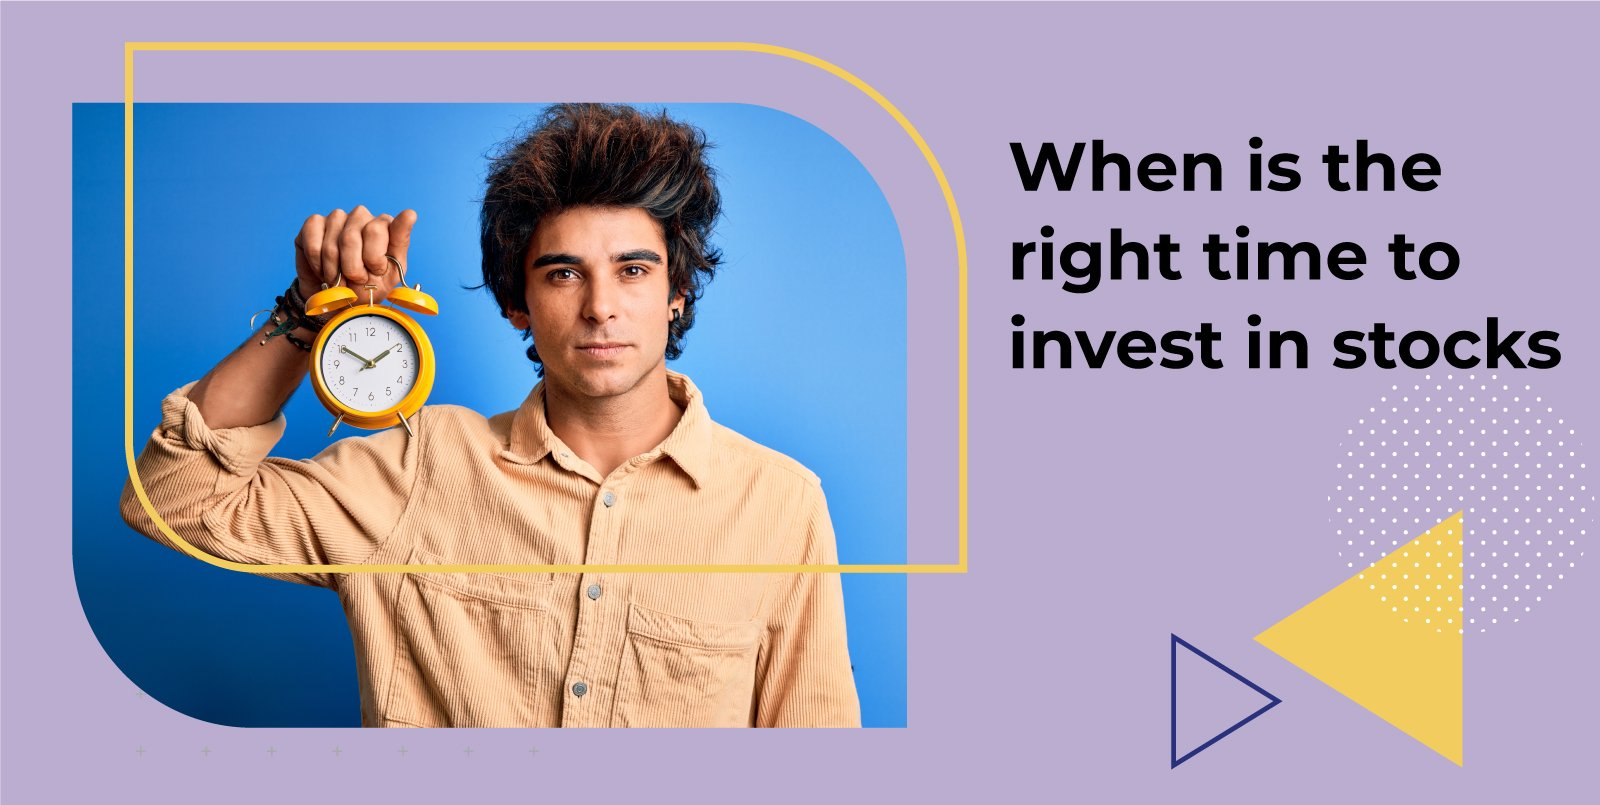 When is the right time to invest in stocks